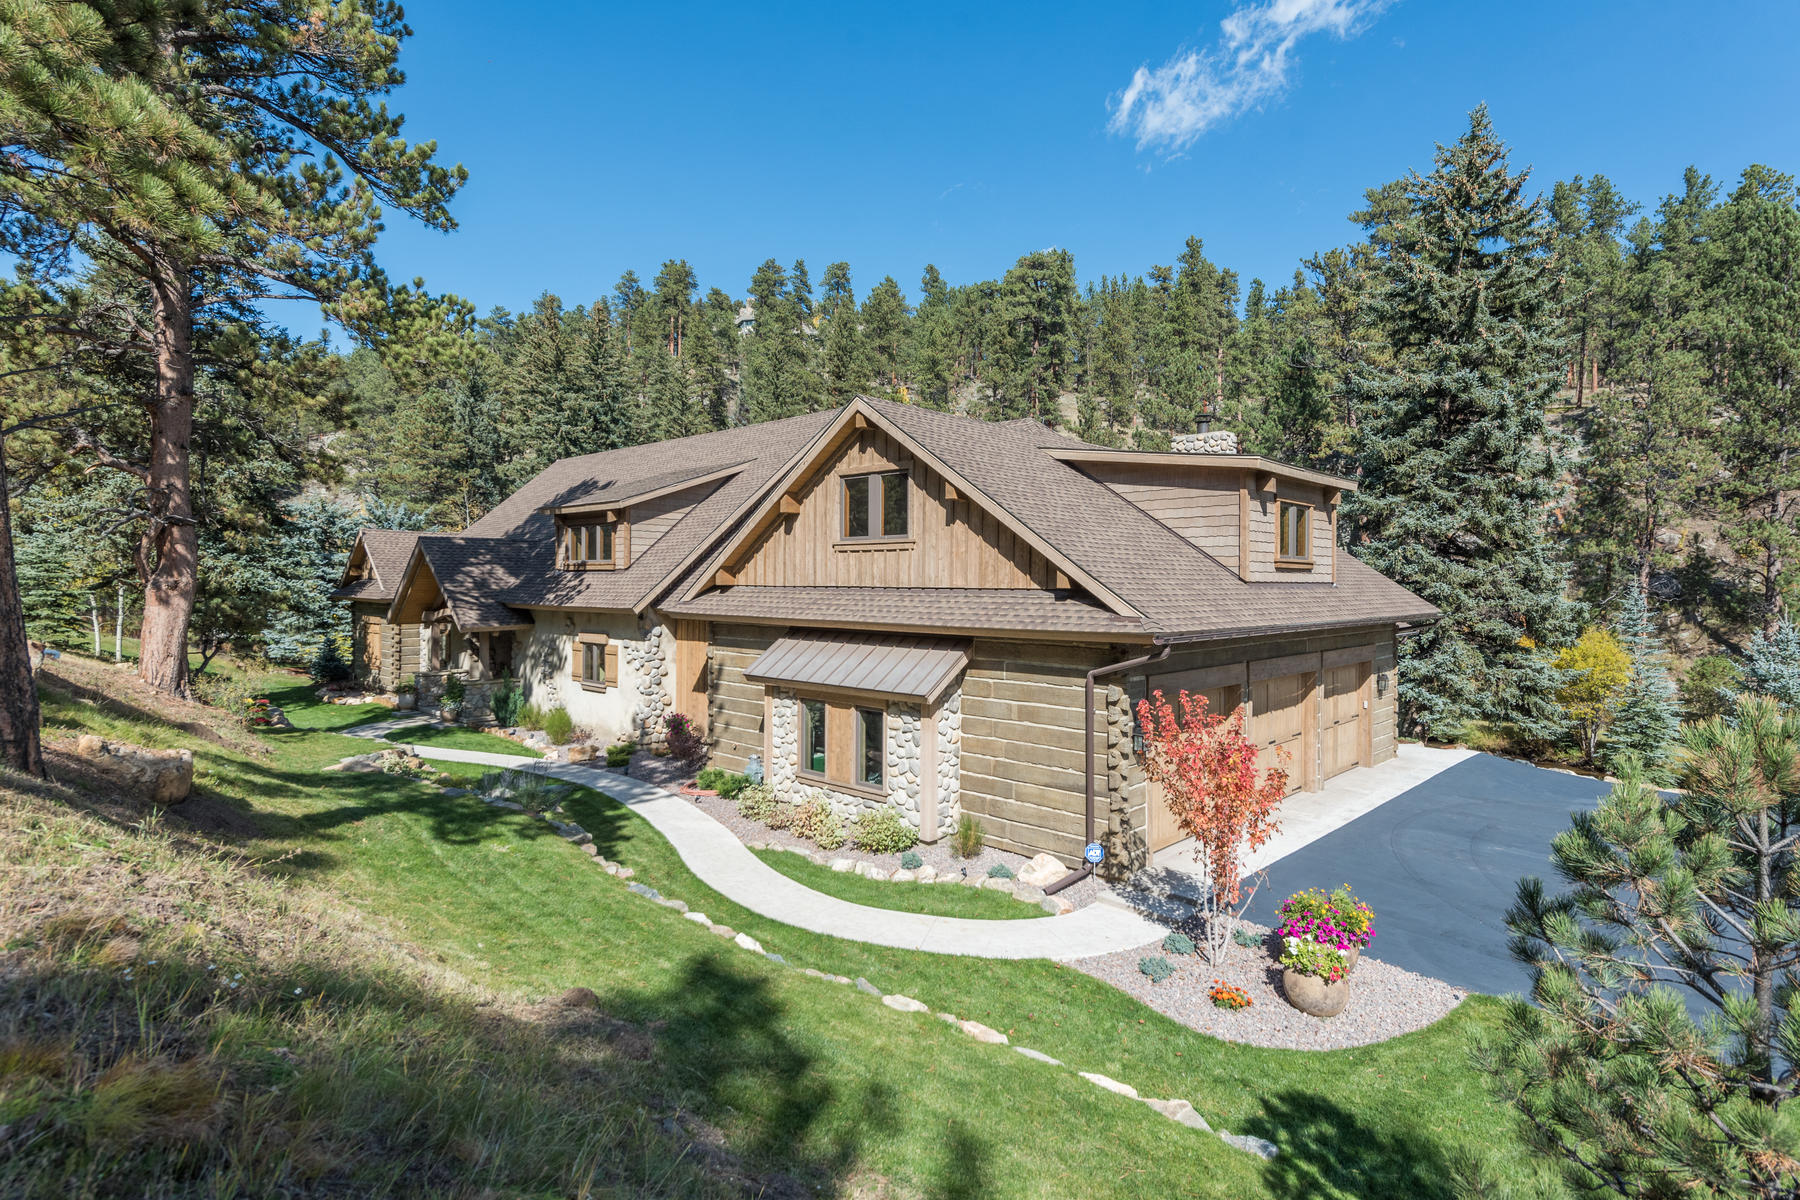 Casa Unifamiliar por un Venta en Custom Creekside Living! 34503 Upper Bear Creek Road Evergreen, Colorado 80439 Estados Unidos